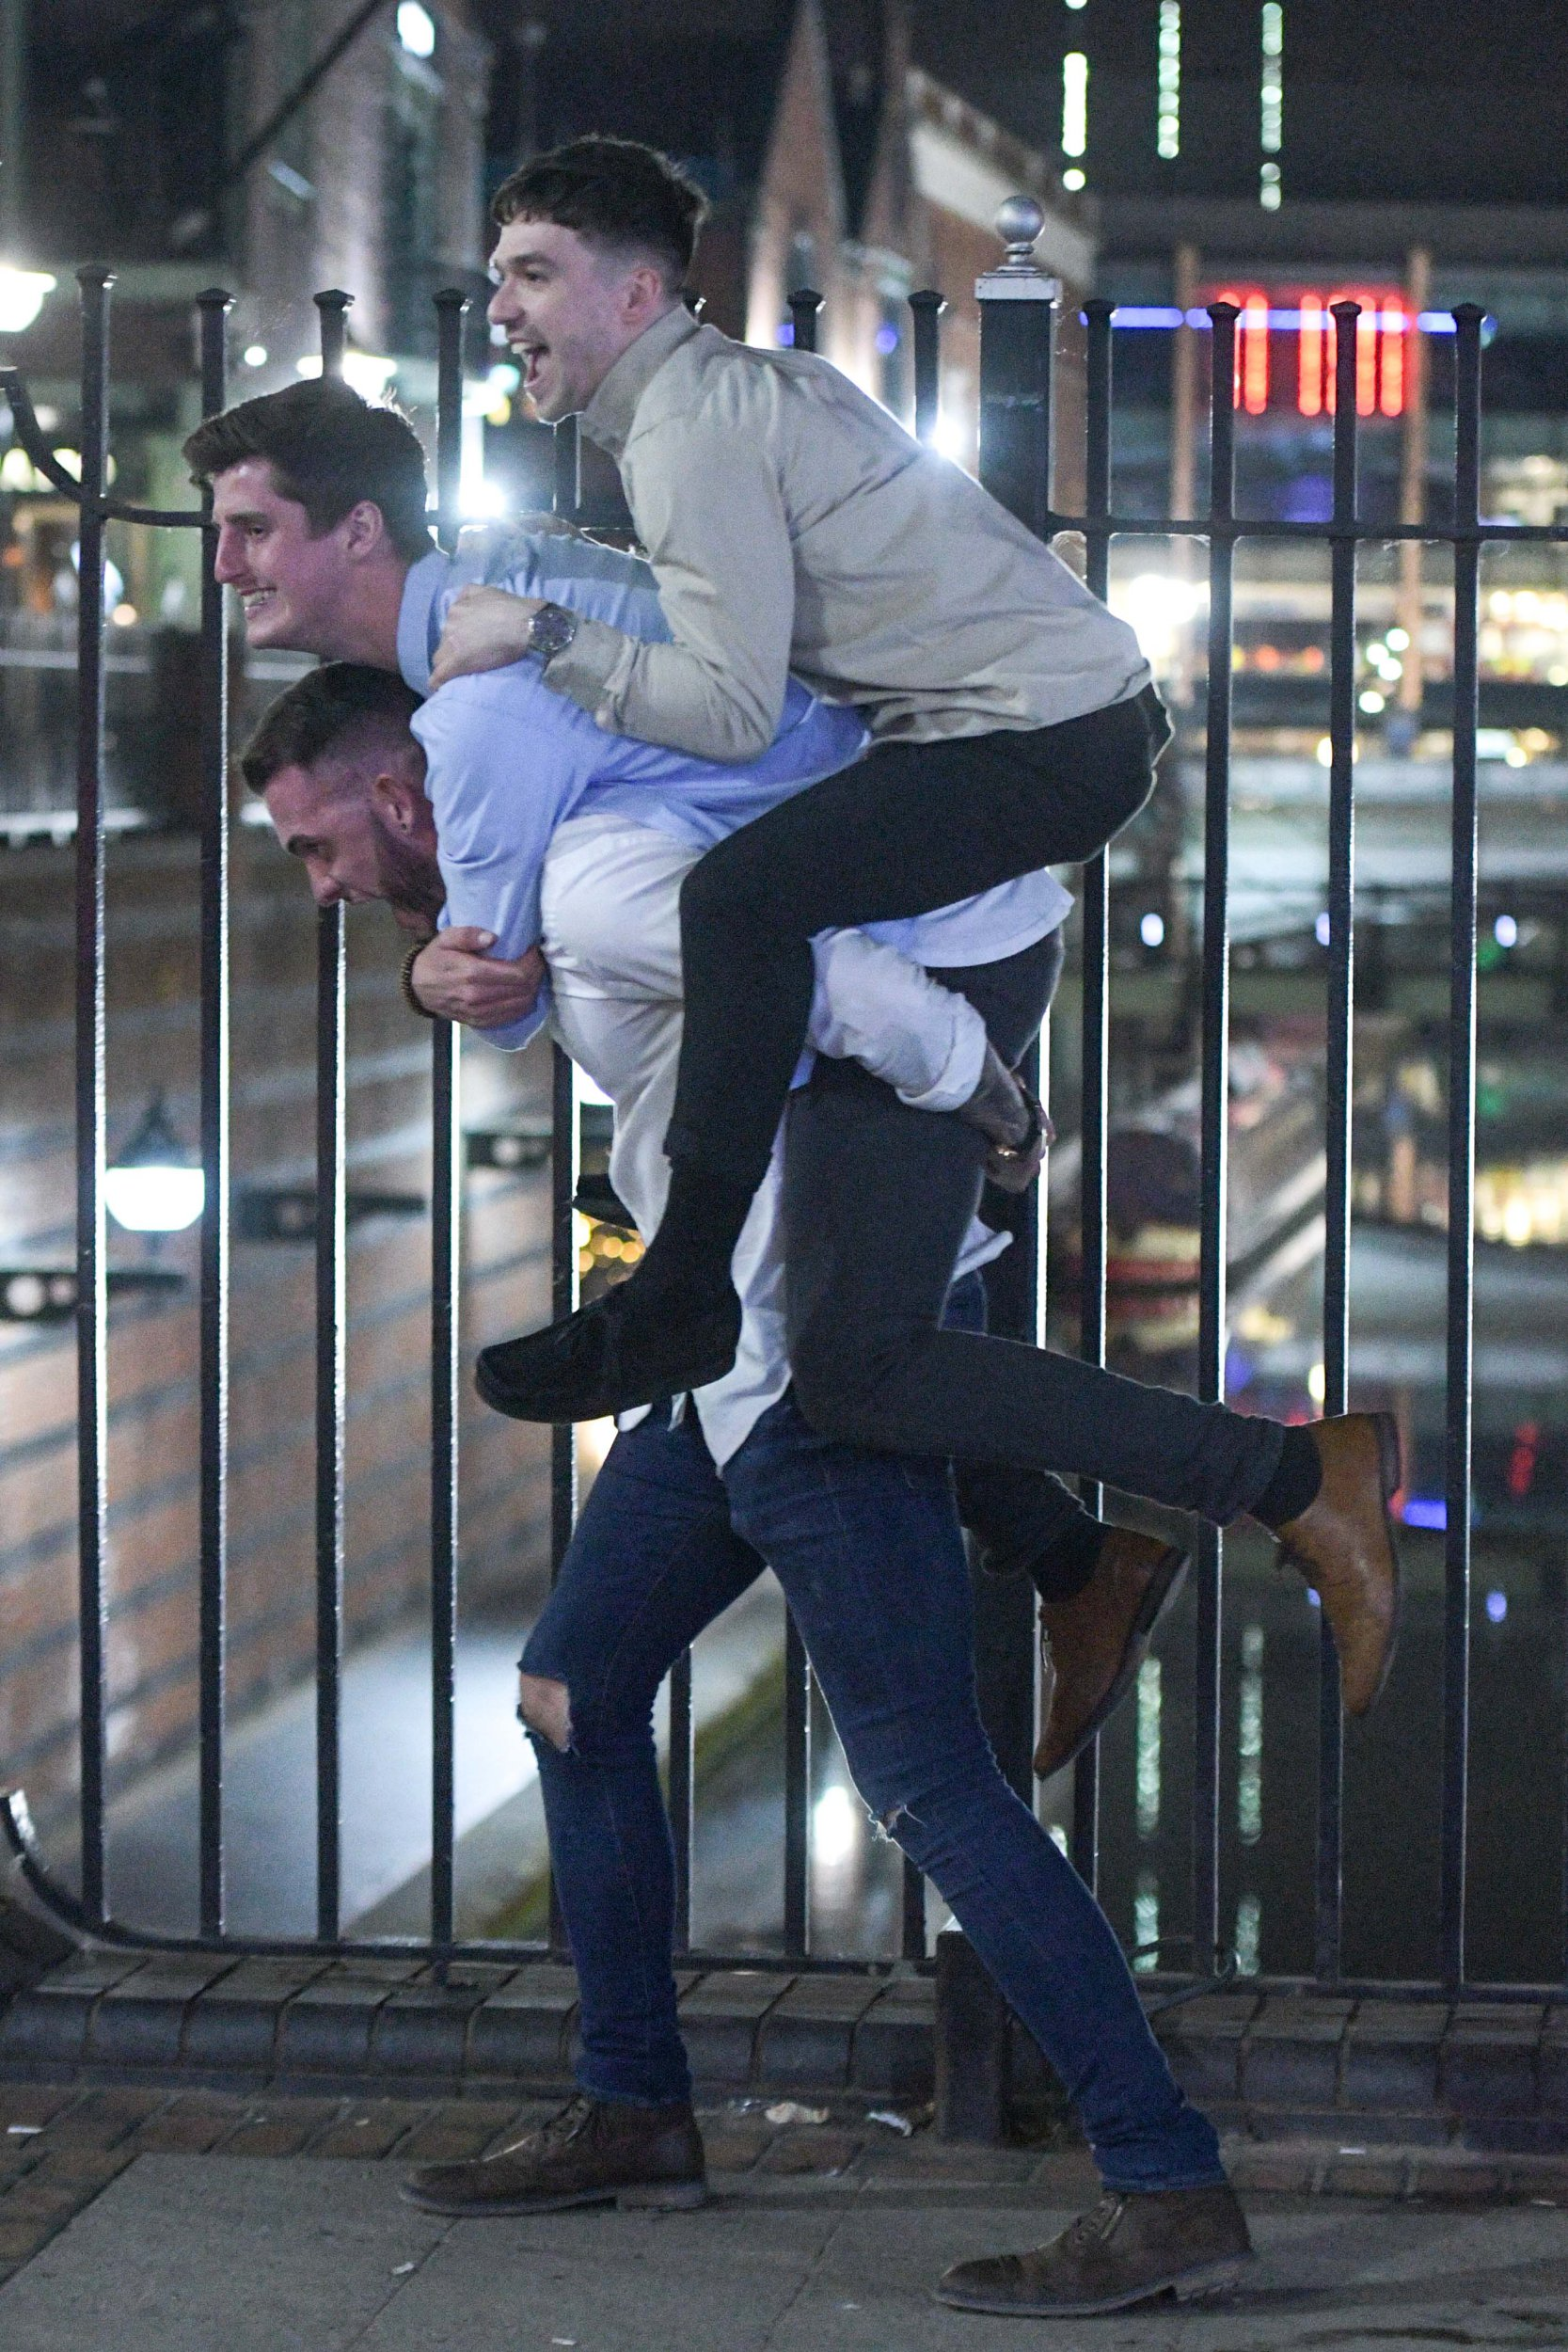 Pic by Michael Scott/Caters News - (PICTURED: An impressive triple person totem pole is achieved by 3 mates as they do a 3-person piggyback on Broad Street in Birmingham on the evening of Easter Sunday through to Bank Holiday Monday. Pic taken: 22/04/2019) - Birmingham partygoers ventured out for one last eventful night on the tiles as the Easter Bank Holiday brought the last party night in with the ability to sleep it off on Bank Holiday Monday. Ladies took advantage of the hot weather to wear a variety of minidresses. Some of the men got a little too rowdy and ended up being led away in handcuffs by police officers who were out in force on the evening of Easter Sunday through to Bank Holiday Monday. Some clubbers were a little worse for wear, one girl had to take a rest in the middle of the pavement after hanging off her mate who tried to flag a taxi down to take them home. Three lads created an impressive human totem pole by successfully pulling off a triple piggyback, and their faces showed the achievement. One man appeared to have an injury to his head whilst he talked to his mate and a girl tried to stop a friend from inhaling hippy crack (nitrous oxide) through a pink balloon. ENDS